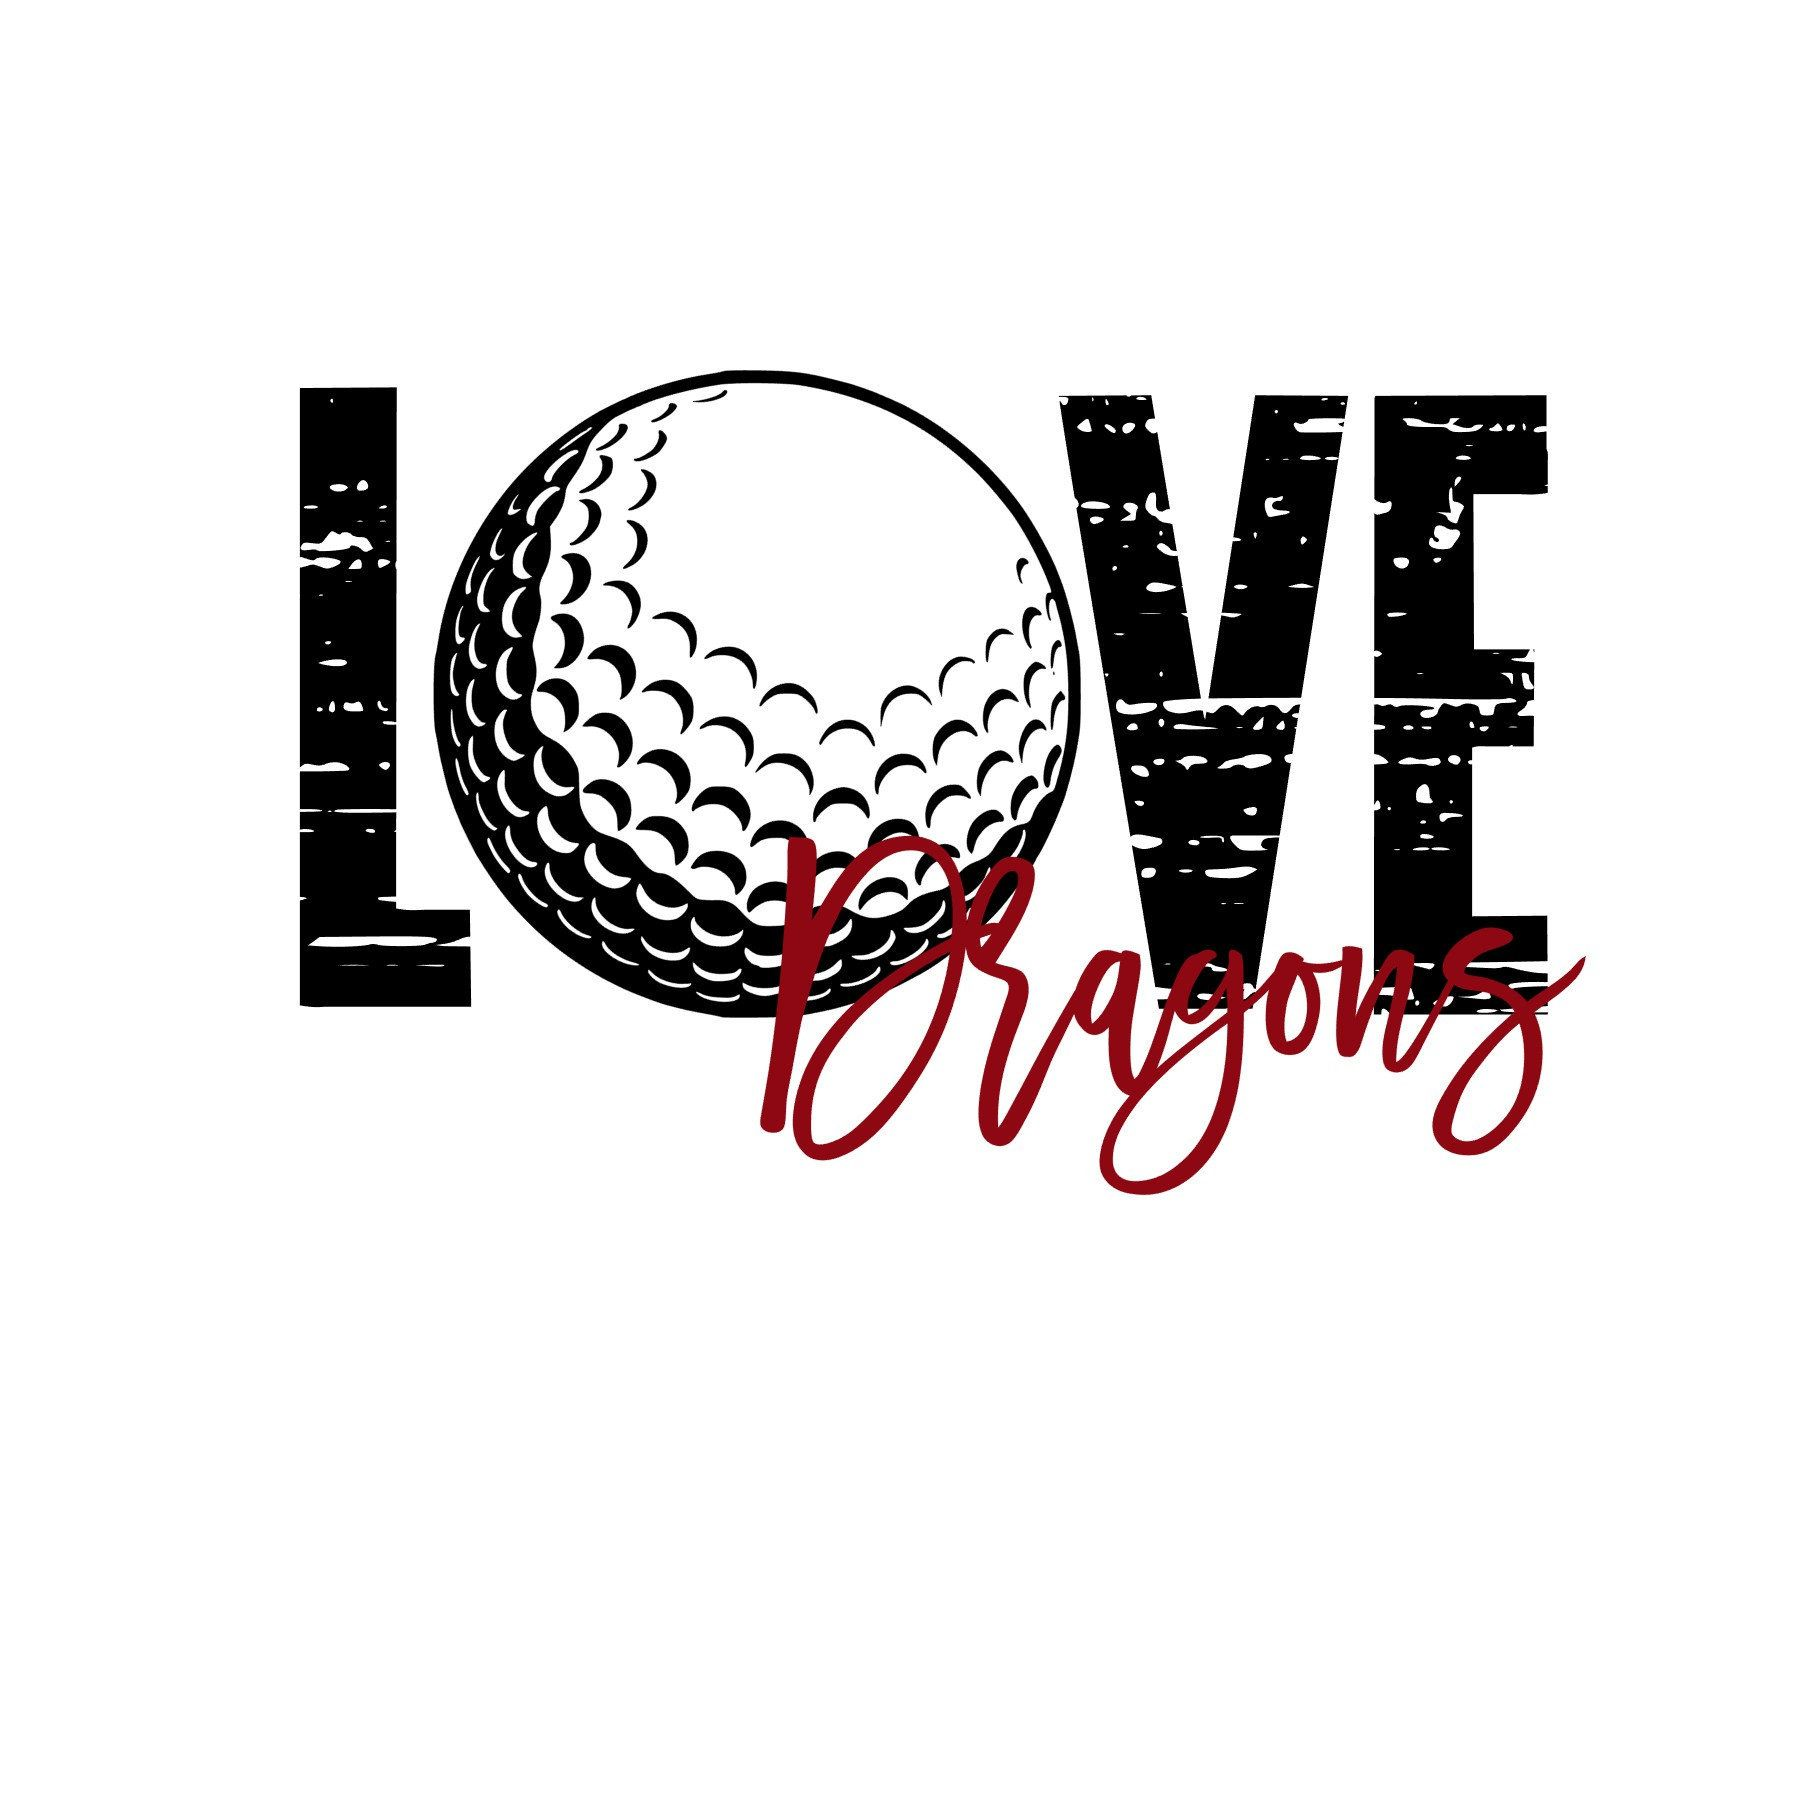 Download Love Dragons Distressed Golf SVG   Etsy   Svg, Etsy, This ...